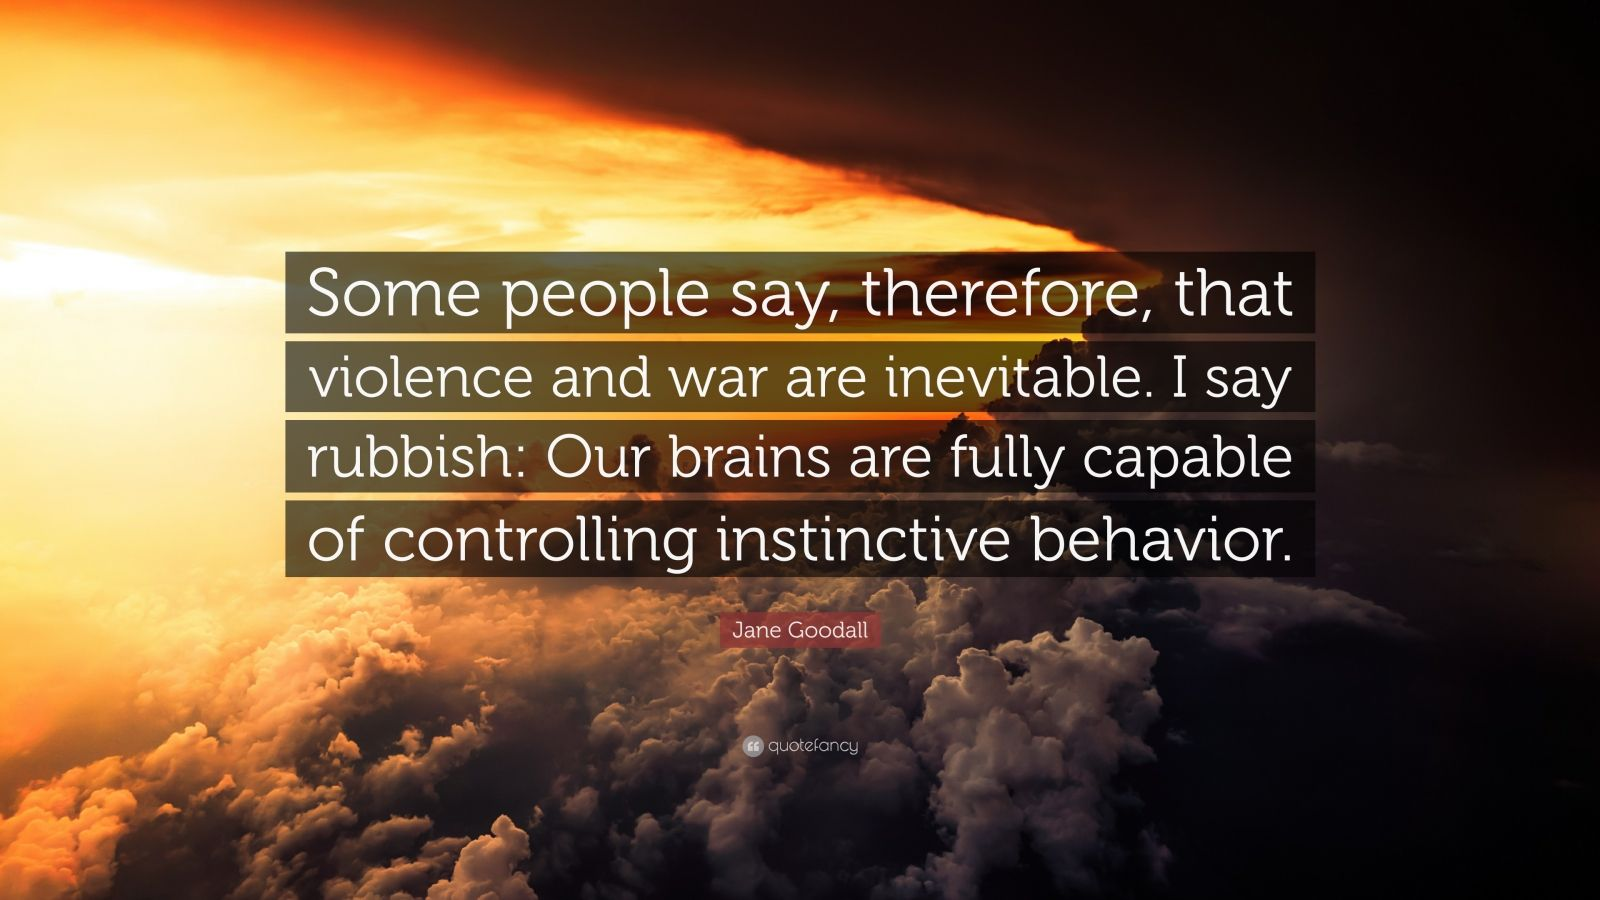 """Jane Goodall Quote: """"Some people say, therefore, that violence and war are inevitable. I say rubbish: Our brains are fully capable of controlling instinctive behavior."""""""